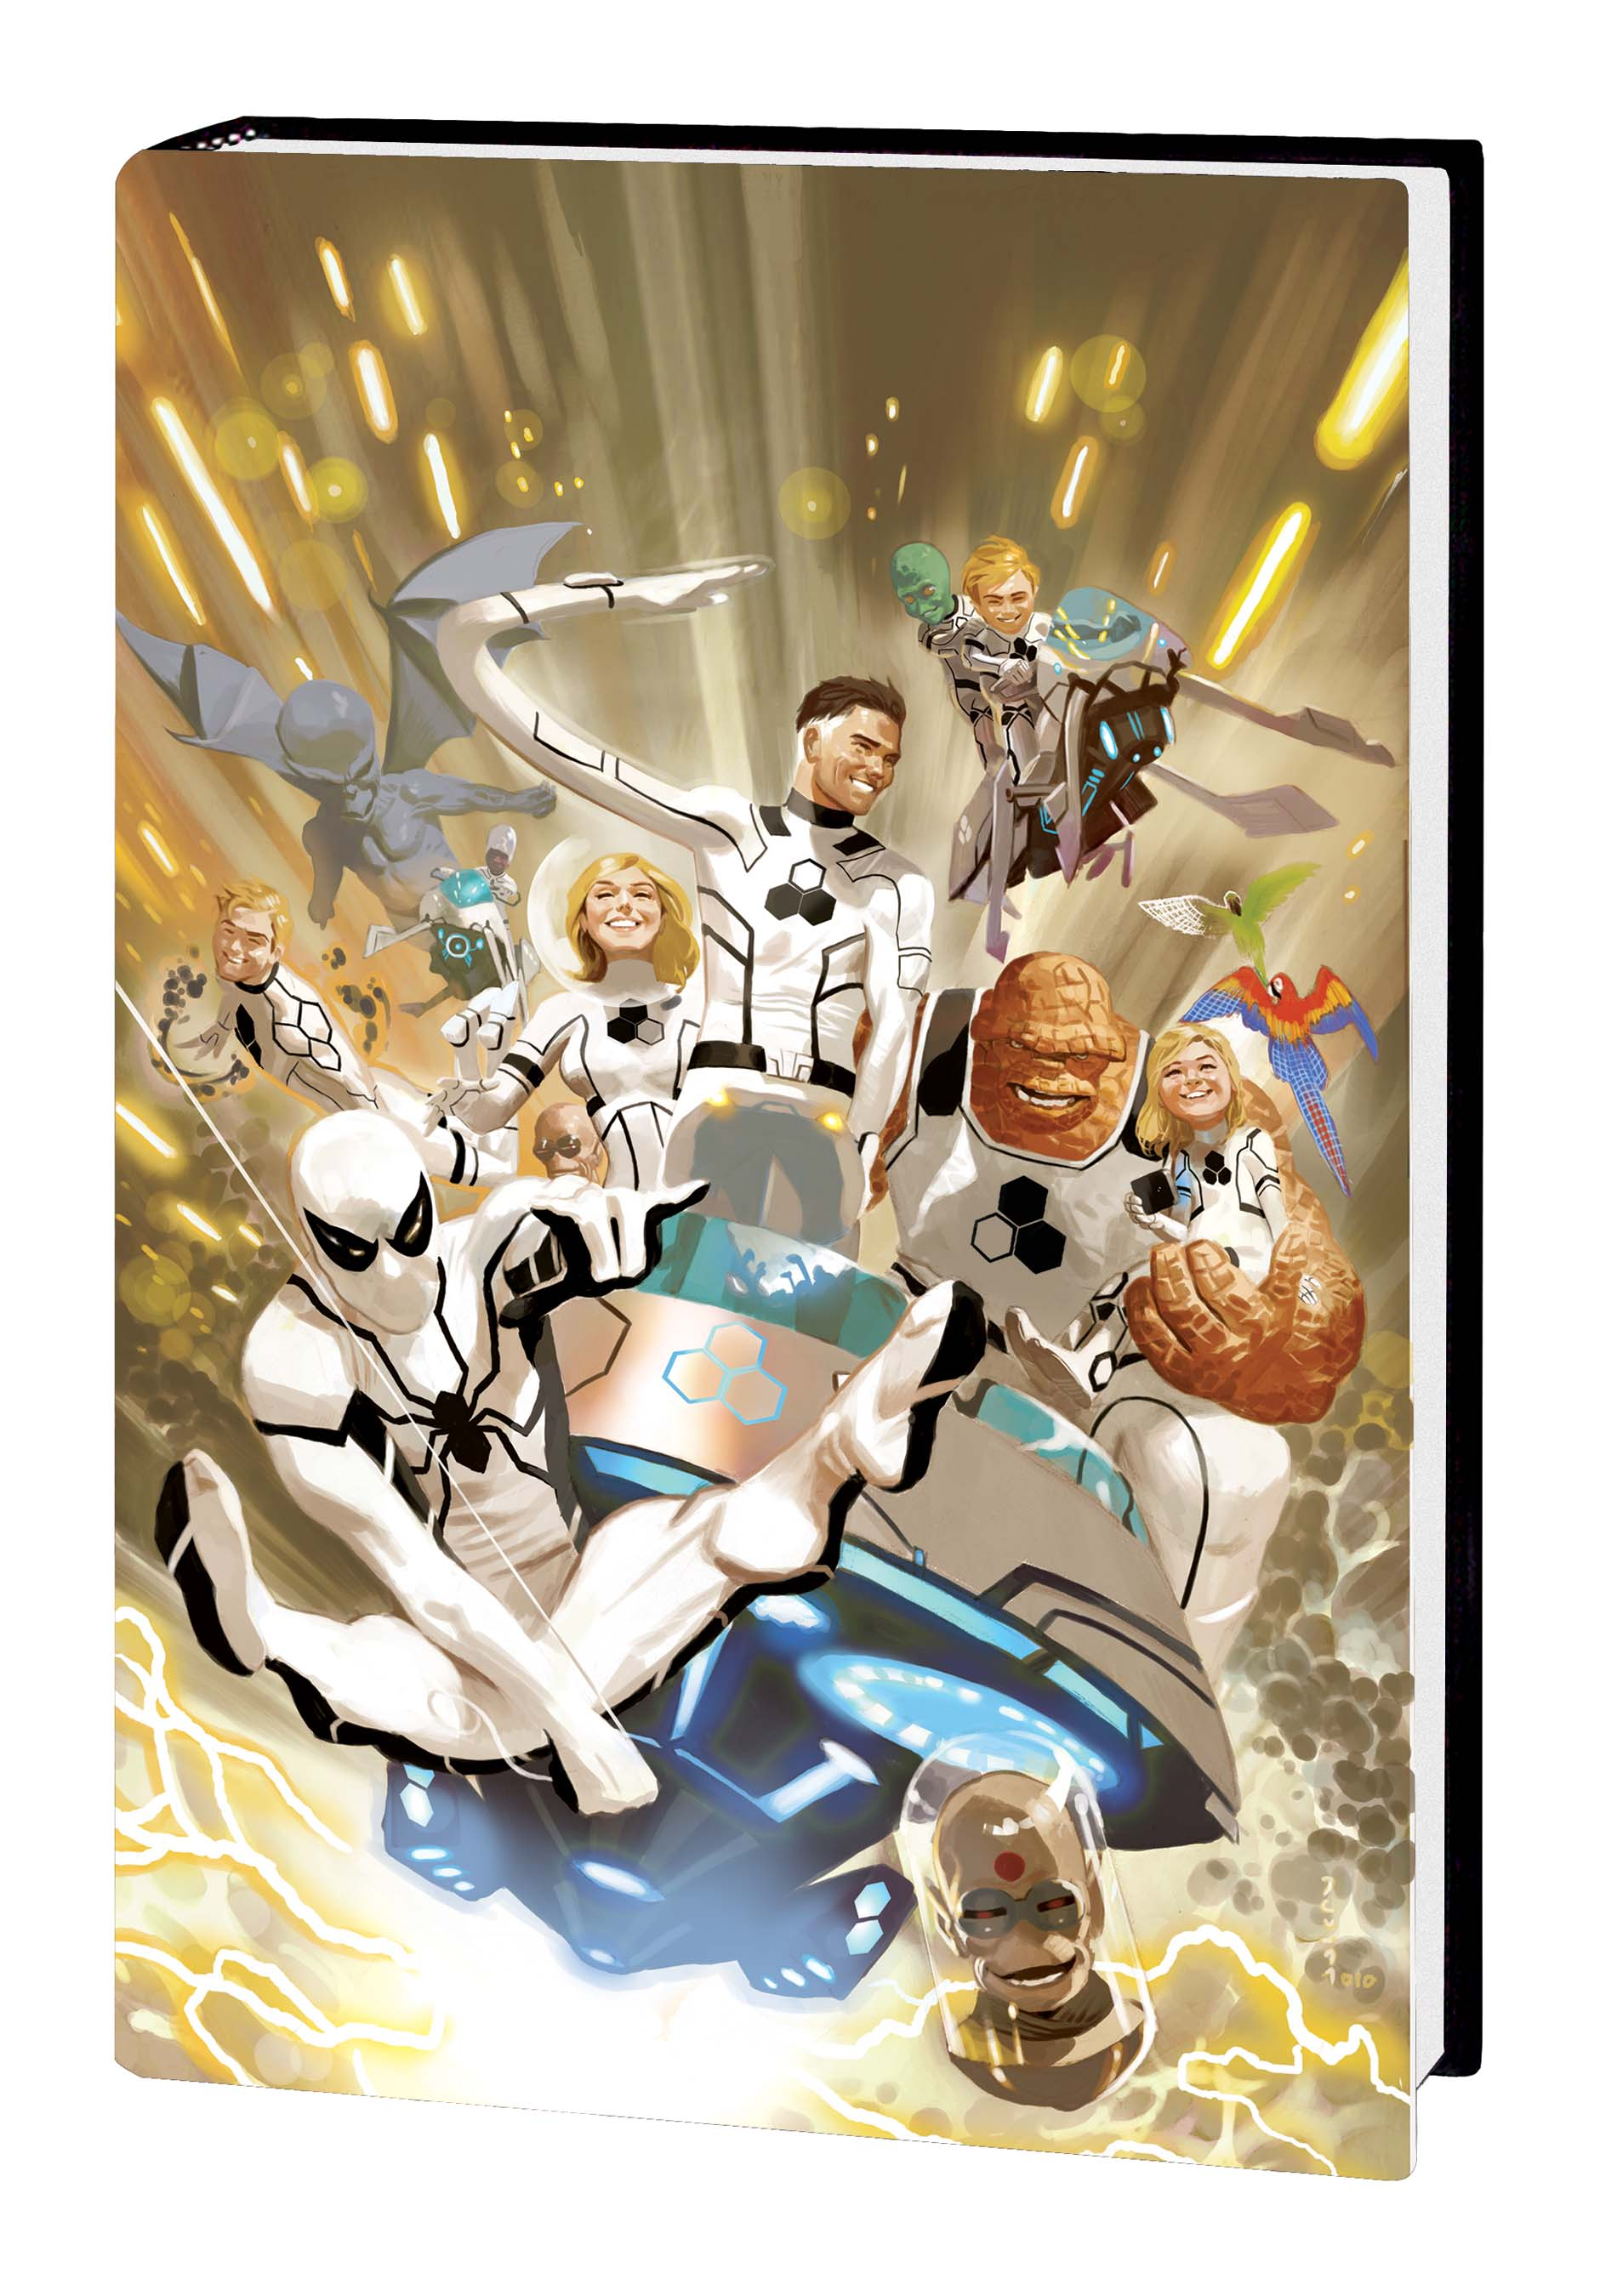 FF BY JONATHAN HICKMAN VOL. 1 ACUNA VARIANT (Hardcover)